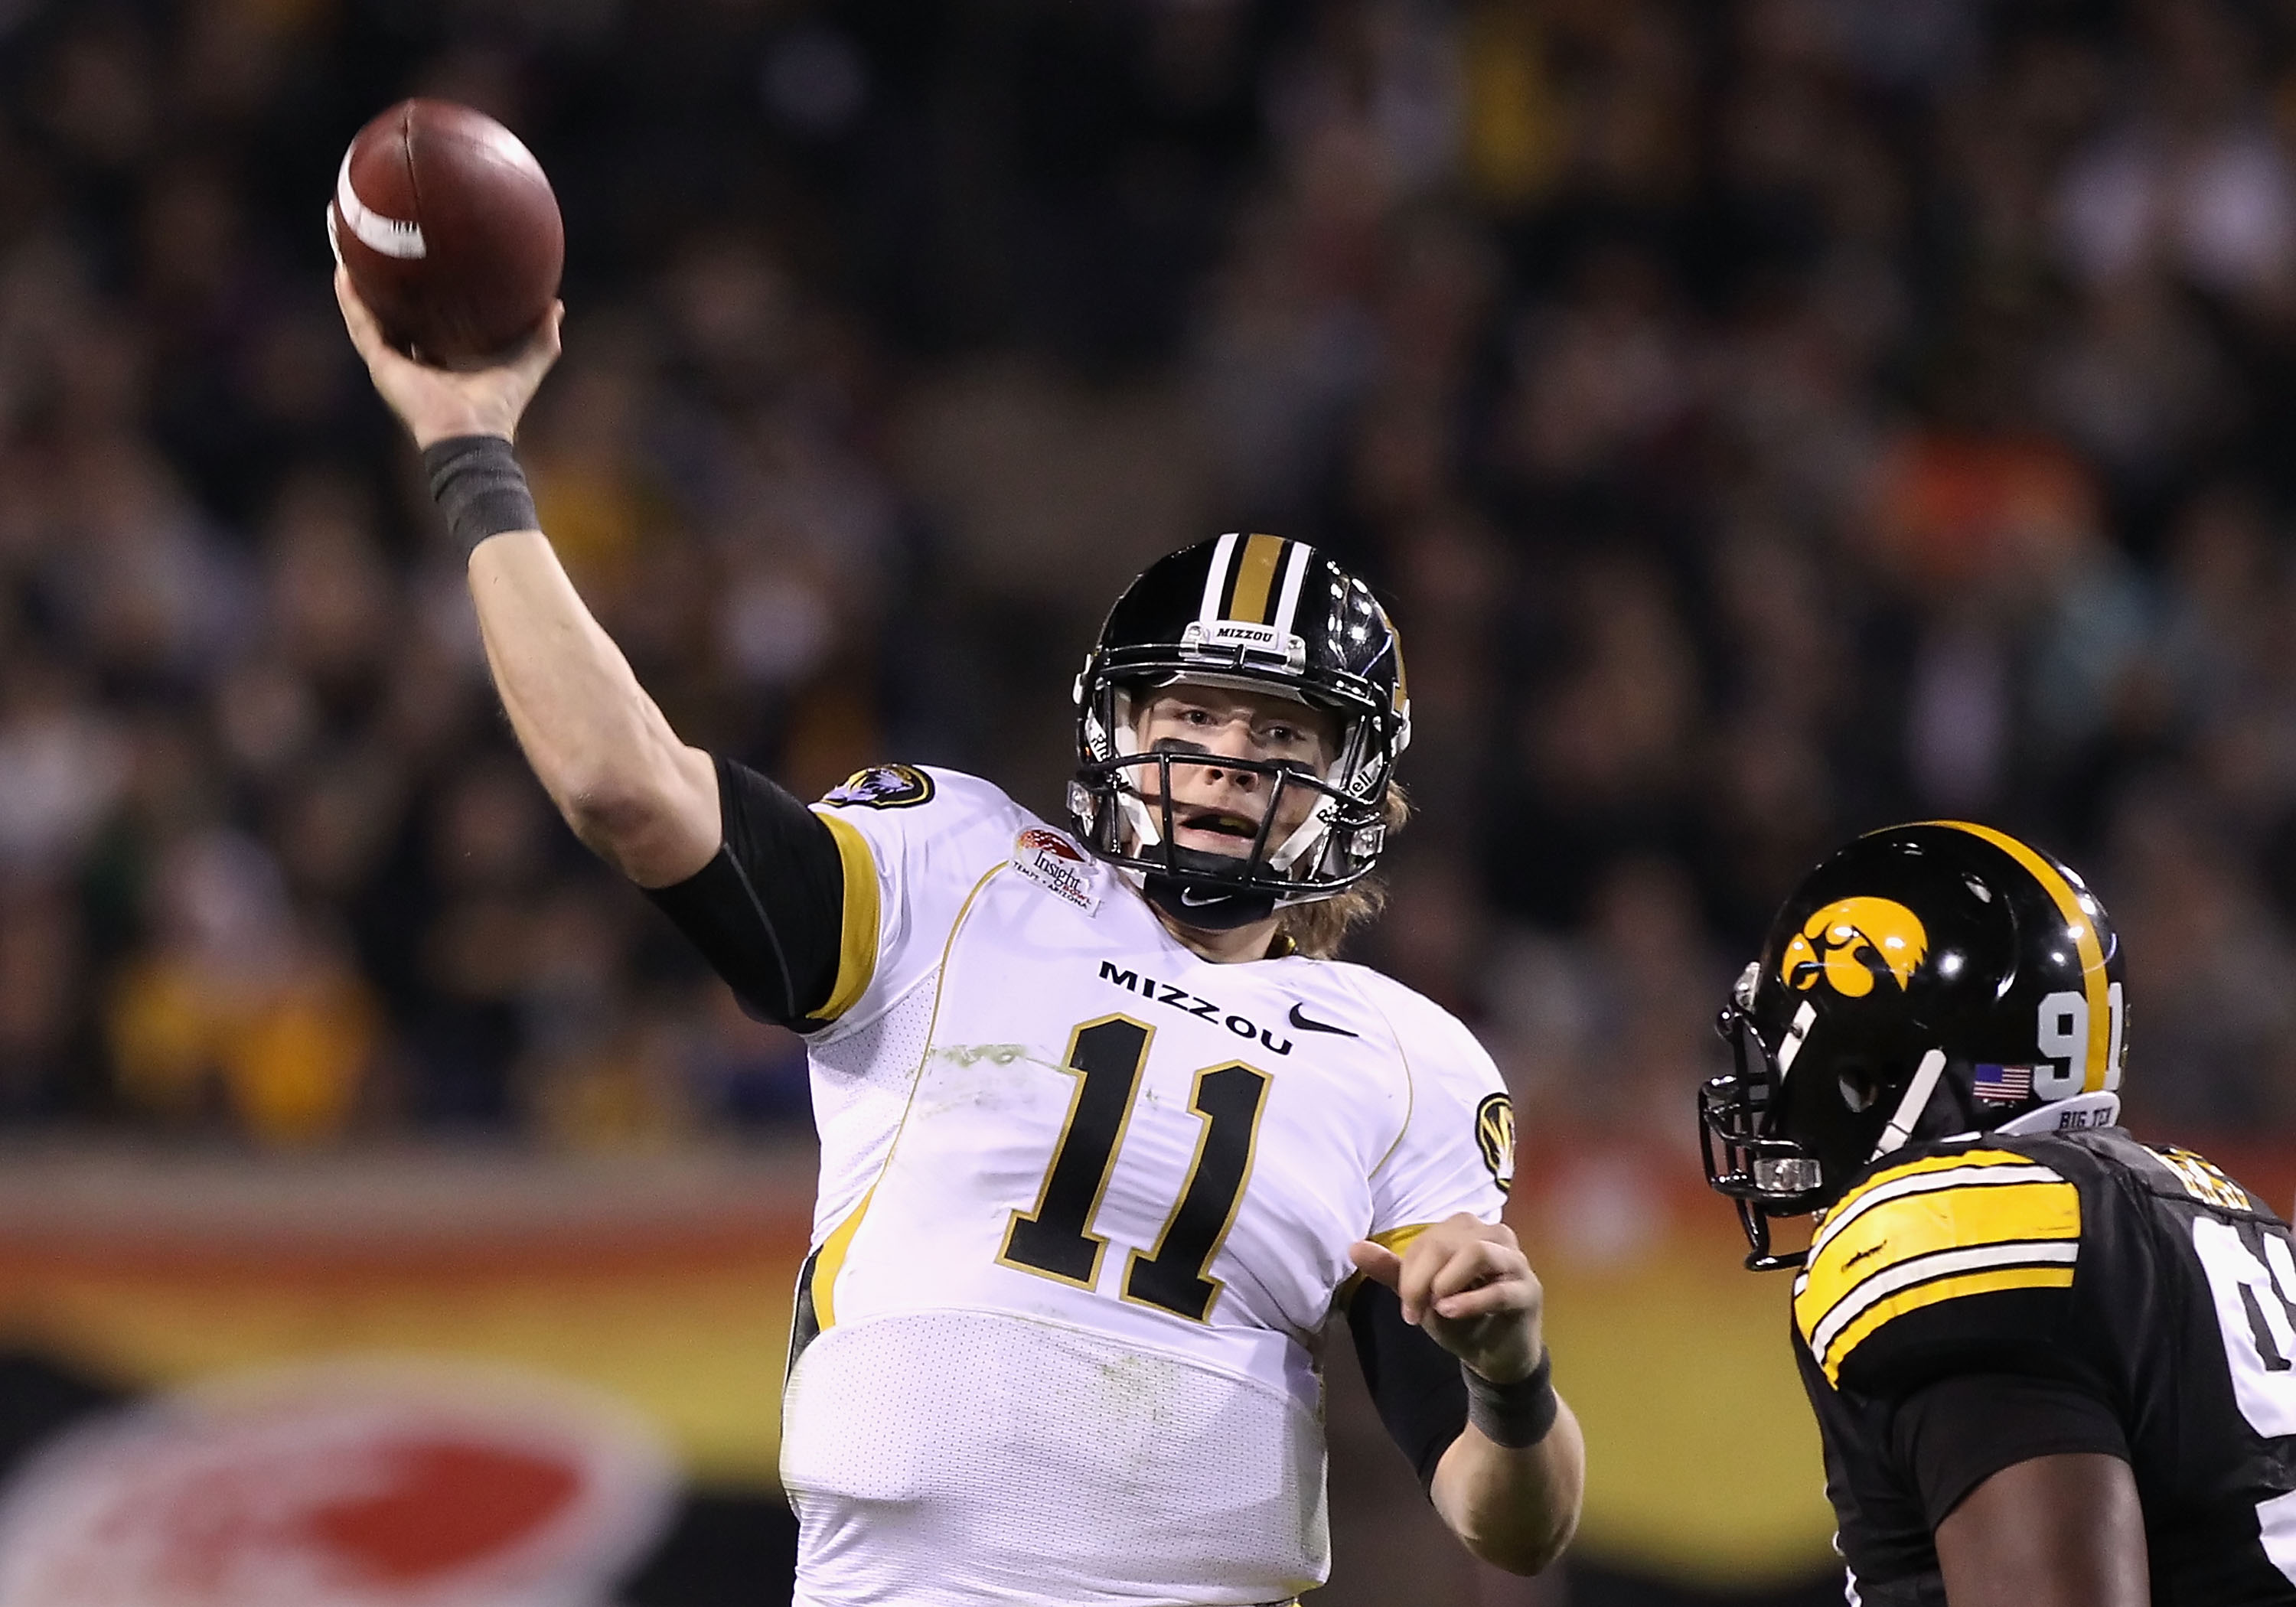 TEMPE, AZ - DECEMBER 28:  Quarterback Blaine Gabbert #11 of the Missouri Tigers throws a pass during the Insight Bowl against the Iowa Hawkeyes at Sun Devil Stadium on December 28, 2010 in Tempe, Arizona.  The Hawkeyes defeated the Tigers 27-24. (Photo by